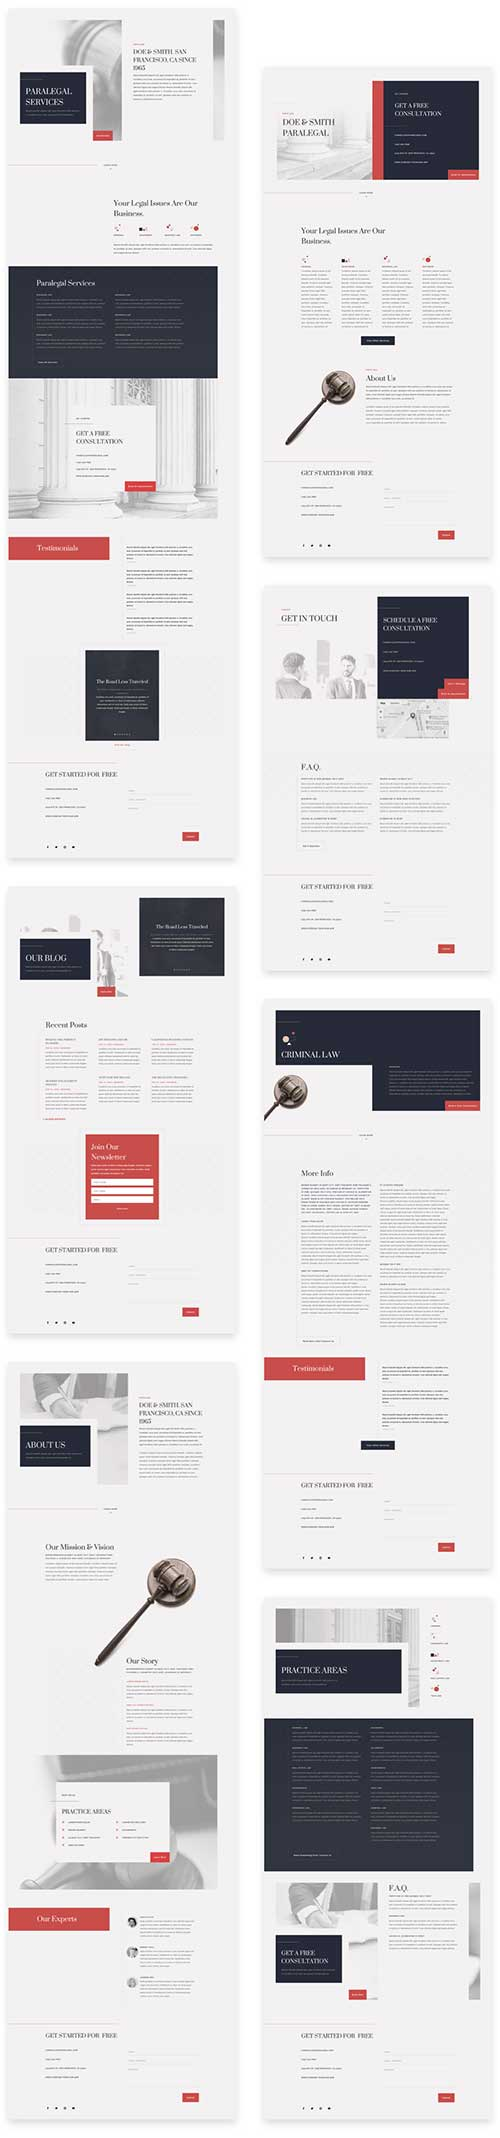 Divi lawyers layout template